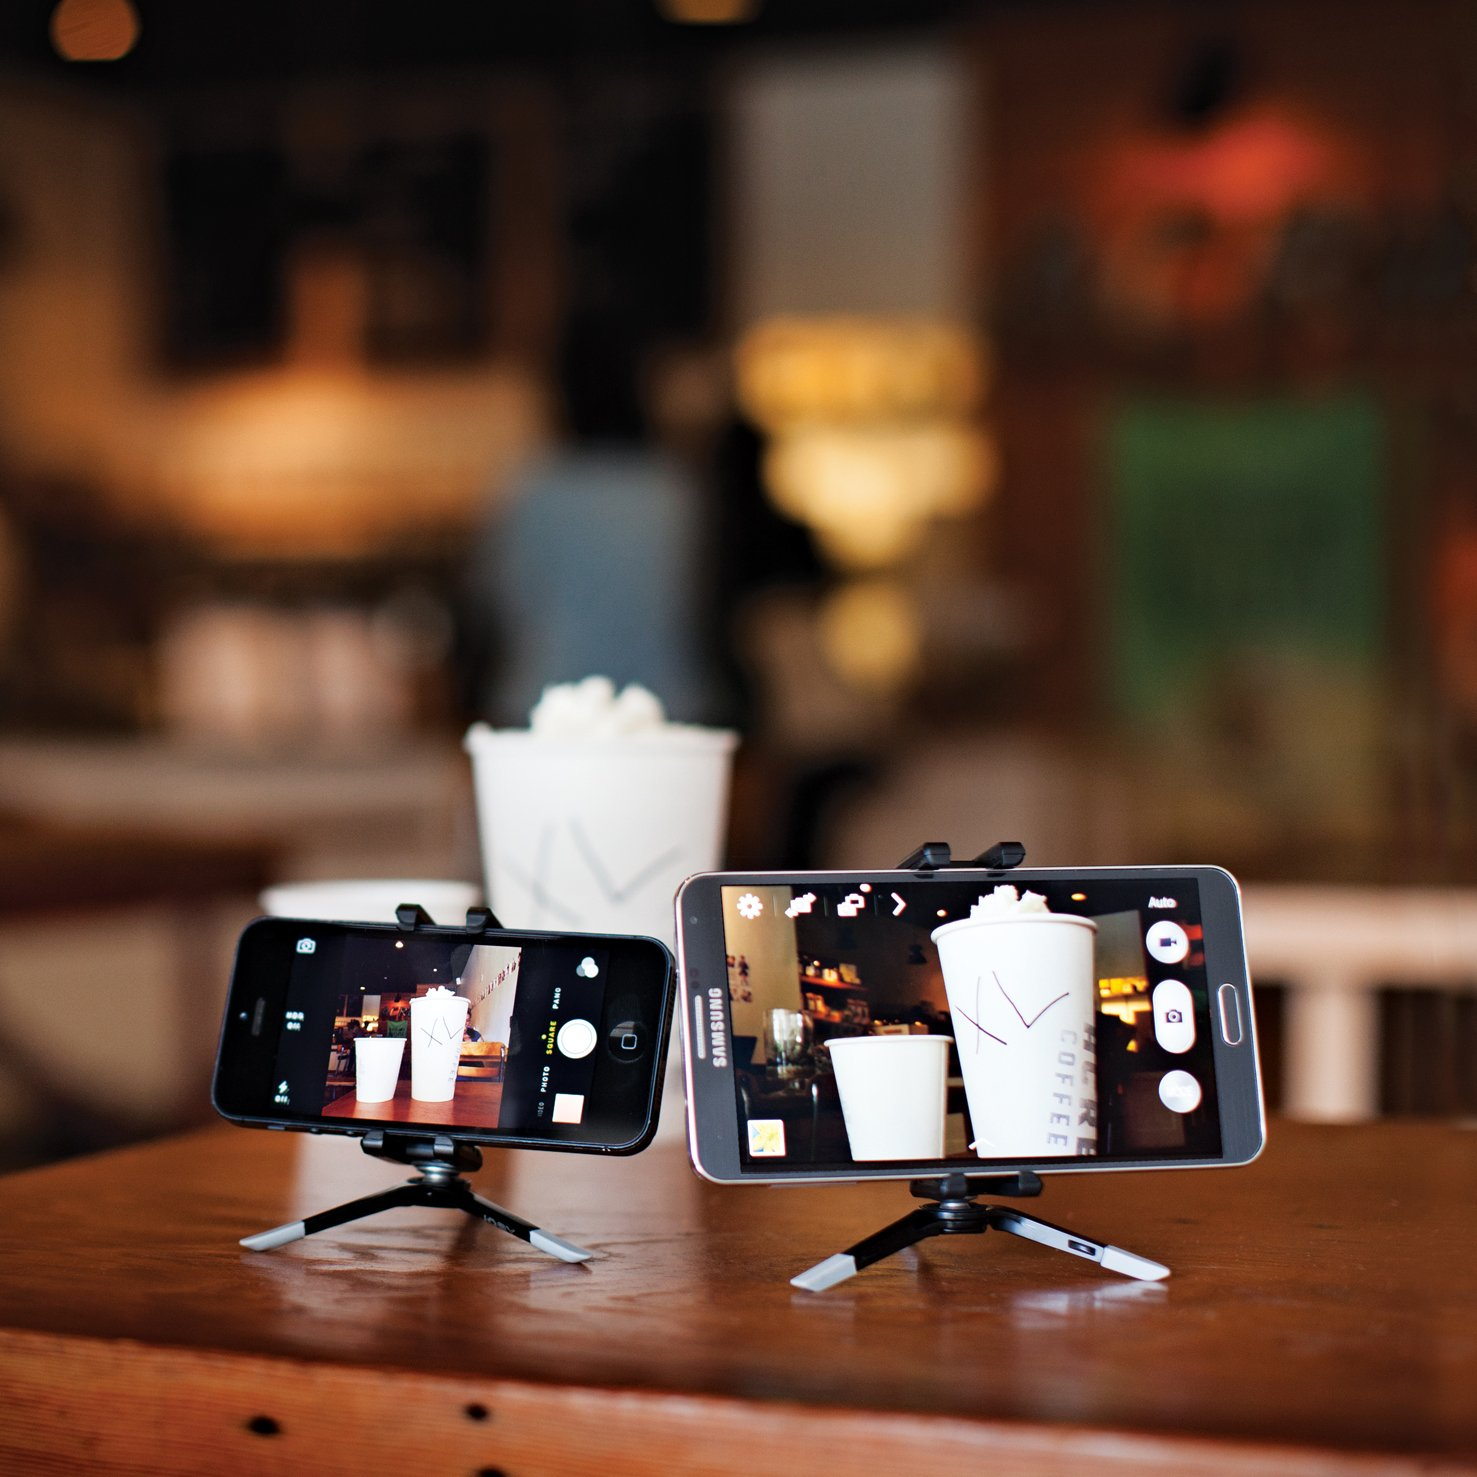 JOBY GripTight Micro Stand For Smaller Smartphones - An Ultra Compact and Portable Smartphone Stand for iPhone 6, iPhone 7, iPhone 8 and More by Joby